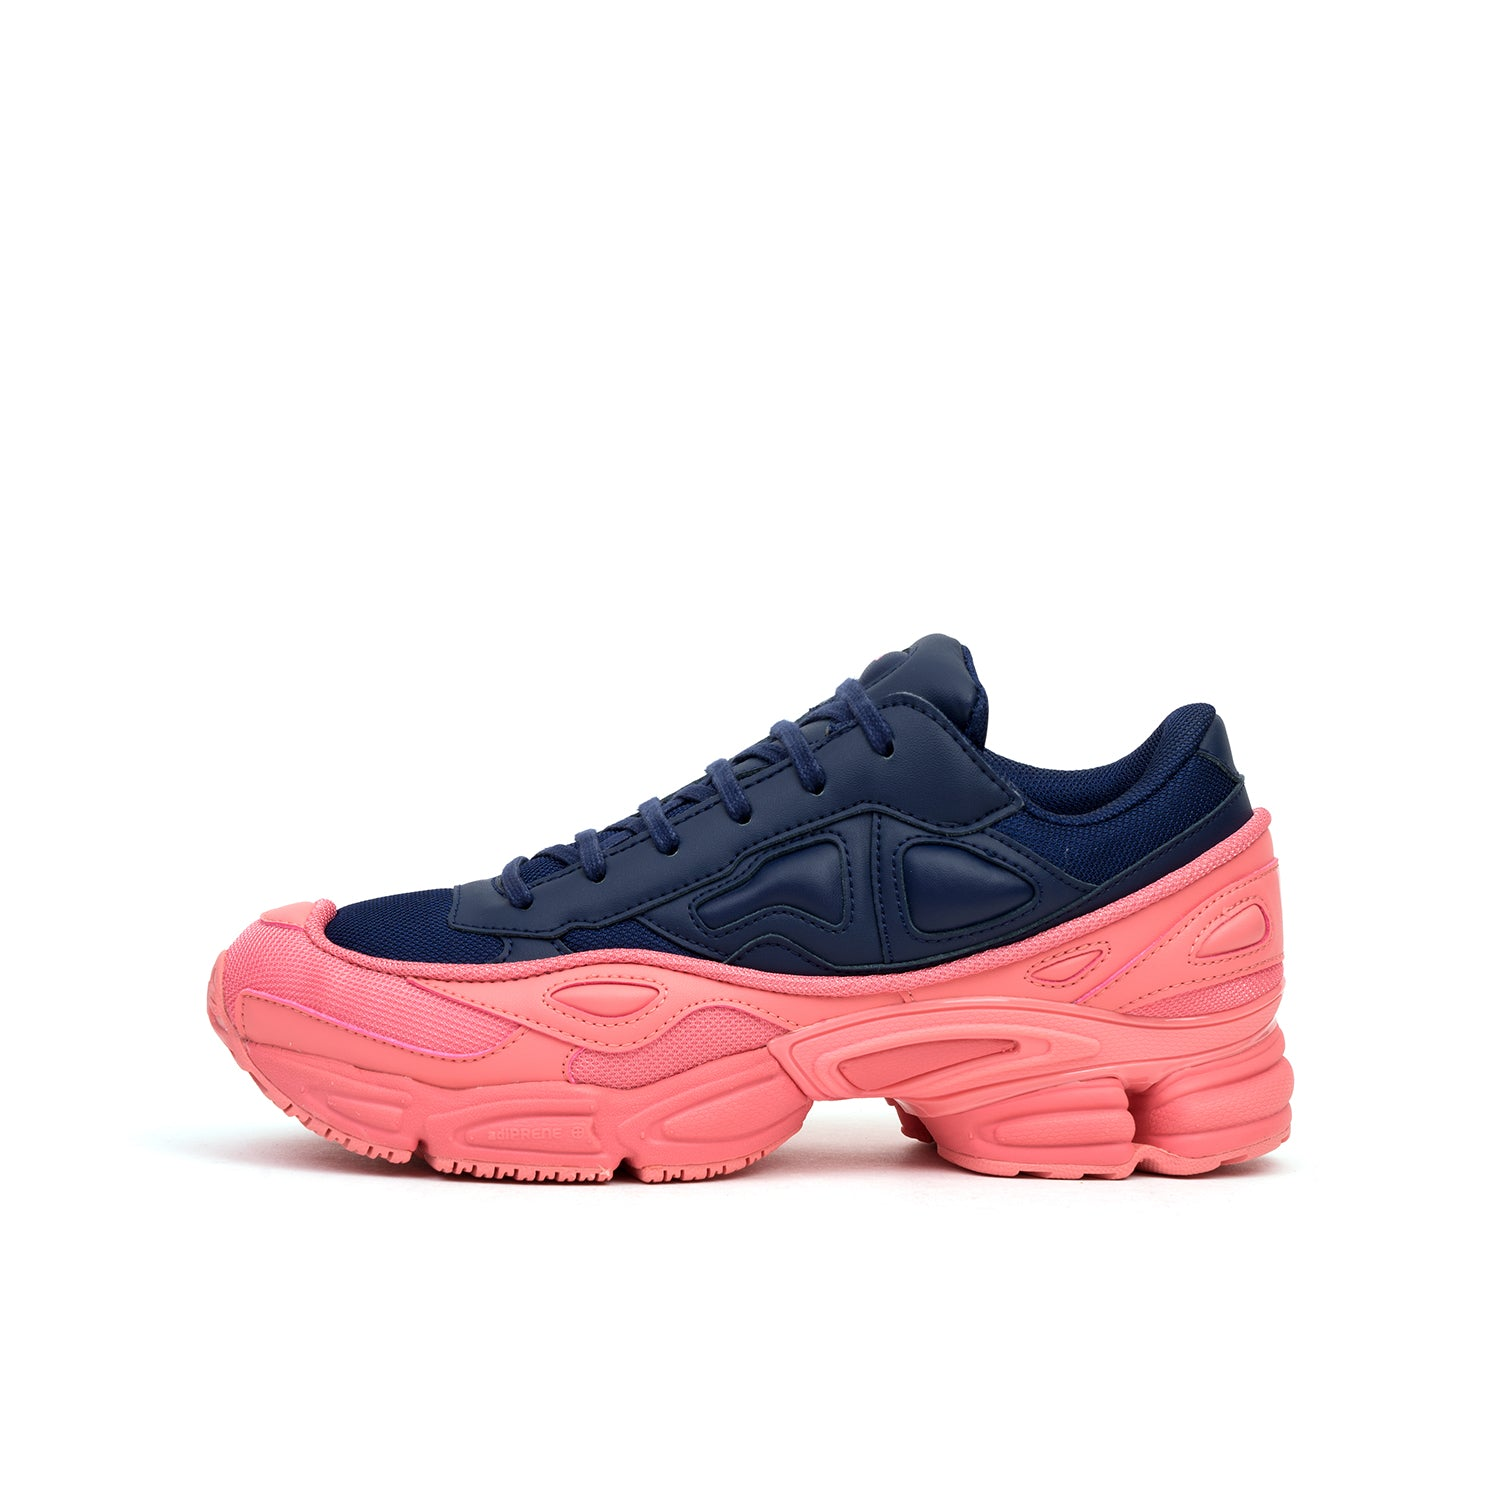 adidas x Raf Simons RS Ozweego Tactile Rose / Dark Blue